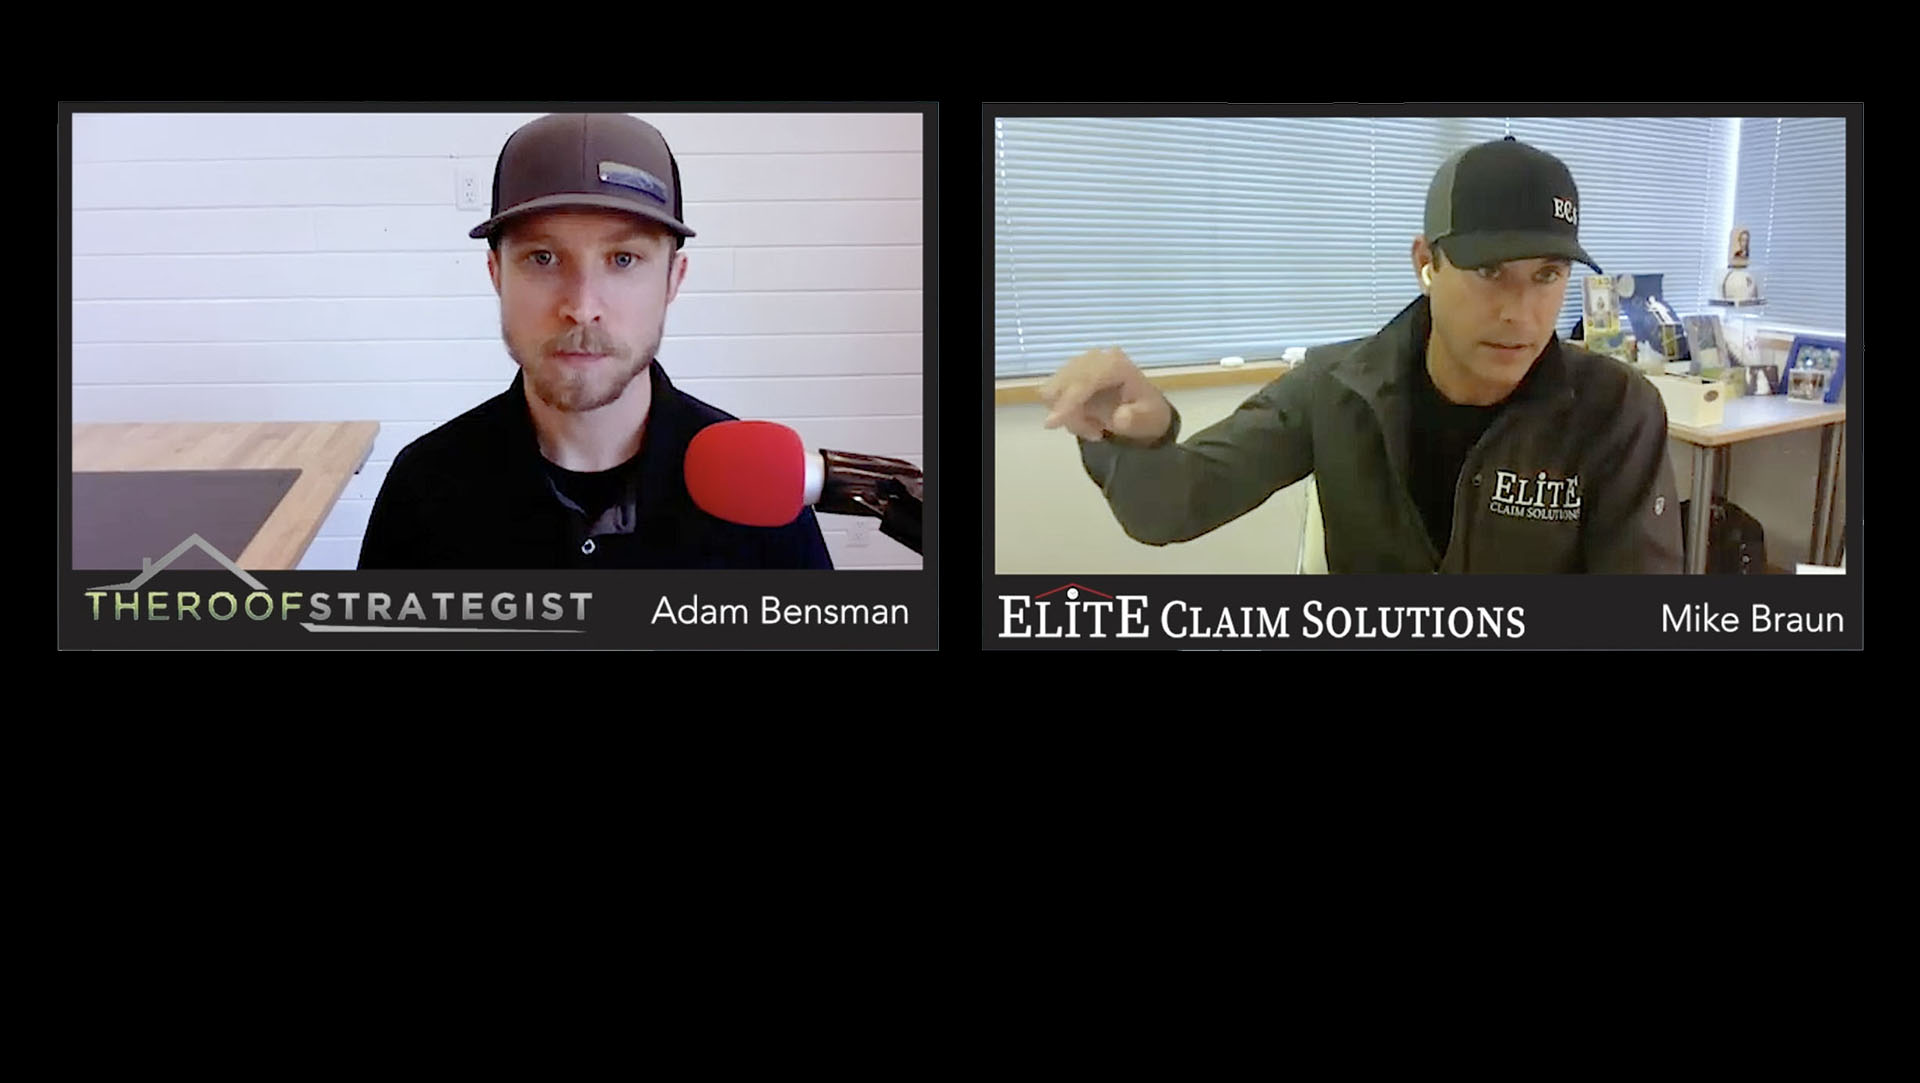 Elite owner was featured on the Roof Strategist's YouTube channel